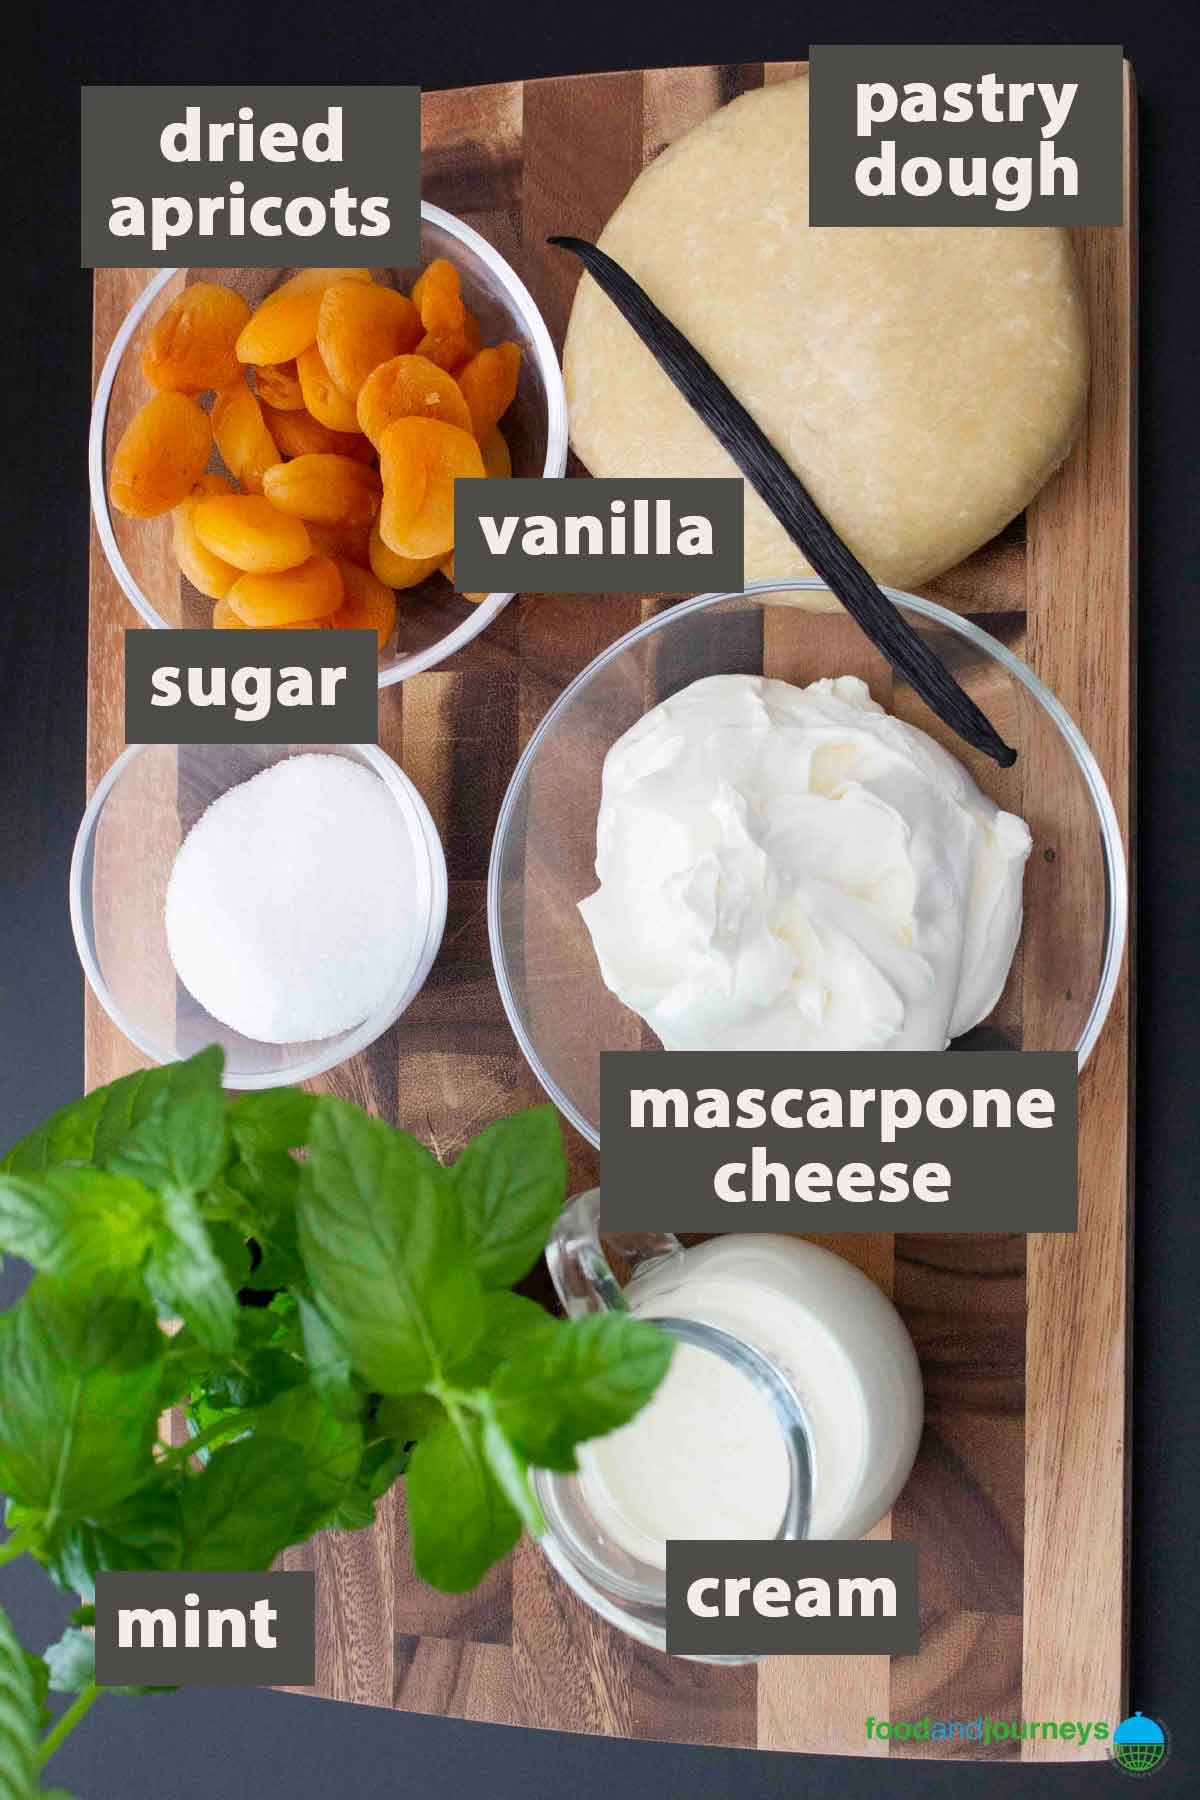 Latest image showing all the ingredients you need to prepare mascarpone & dried apricot tart.